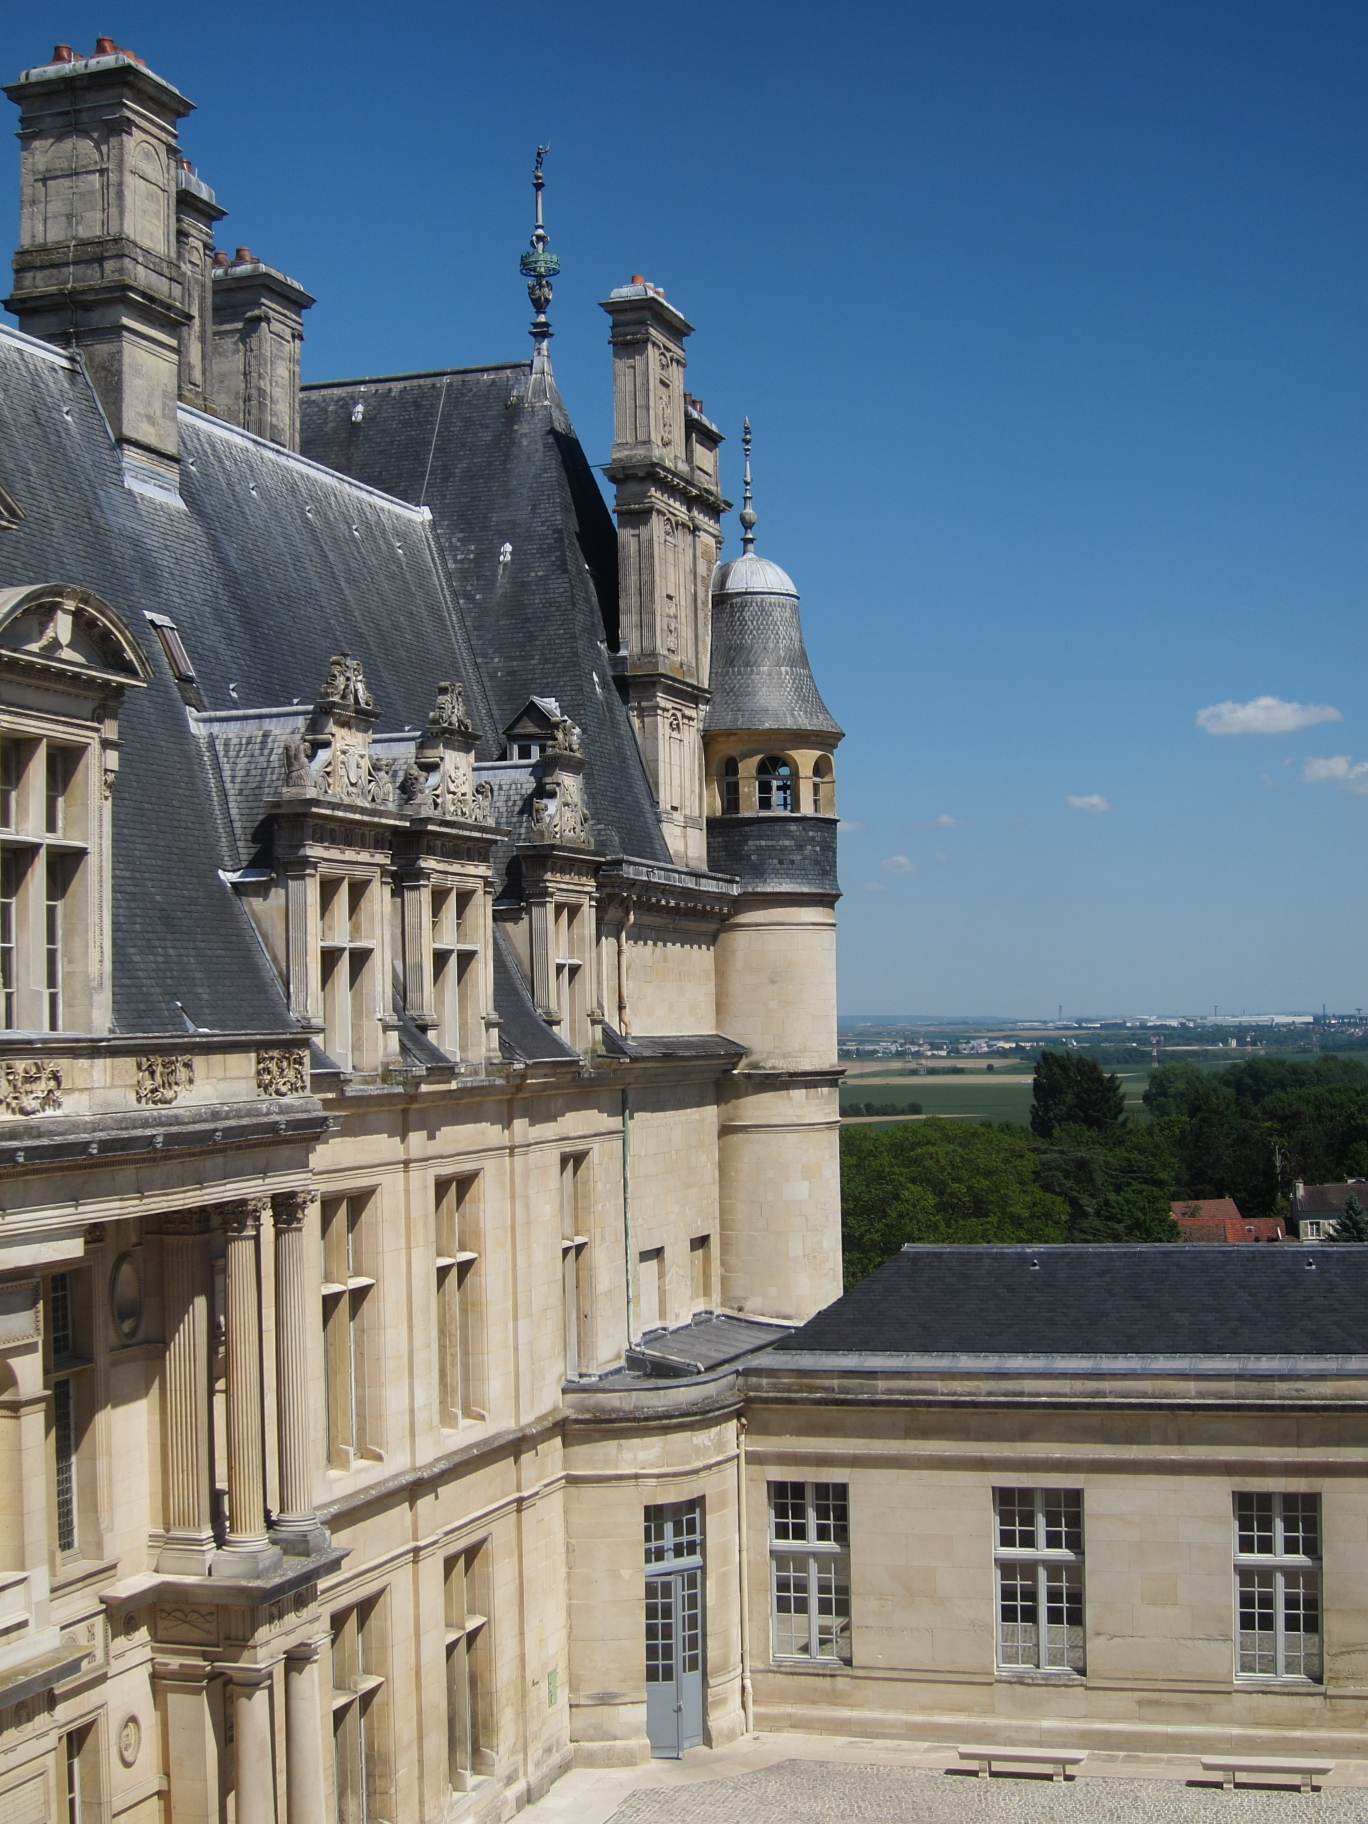 The Château d'Ecouen affords some nice views over the valley.